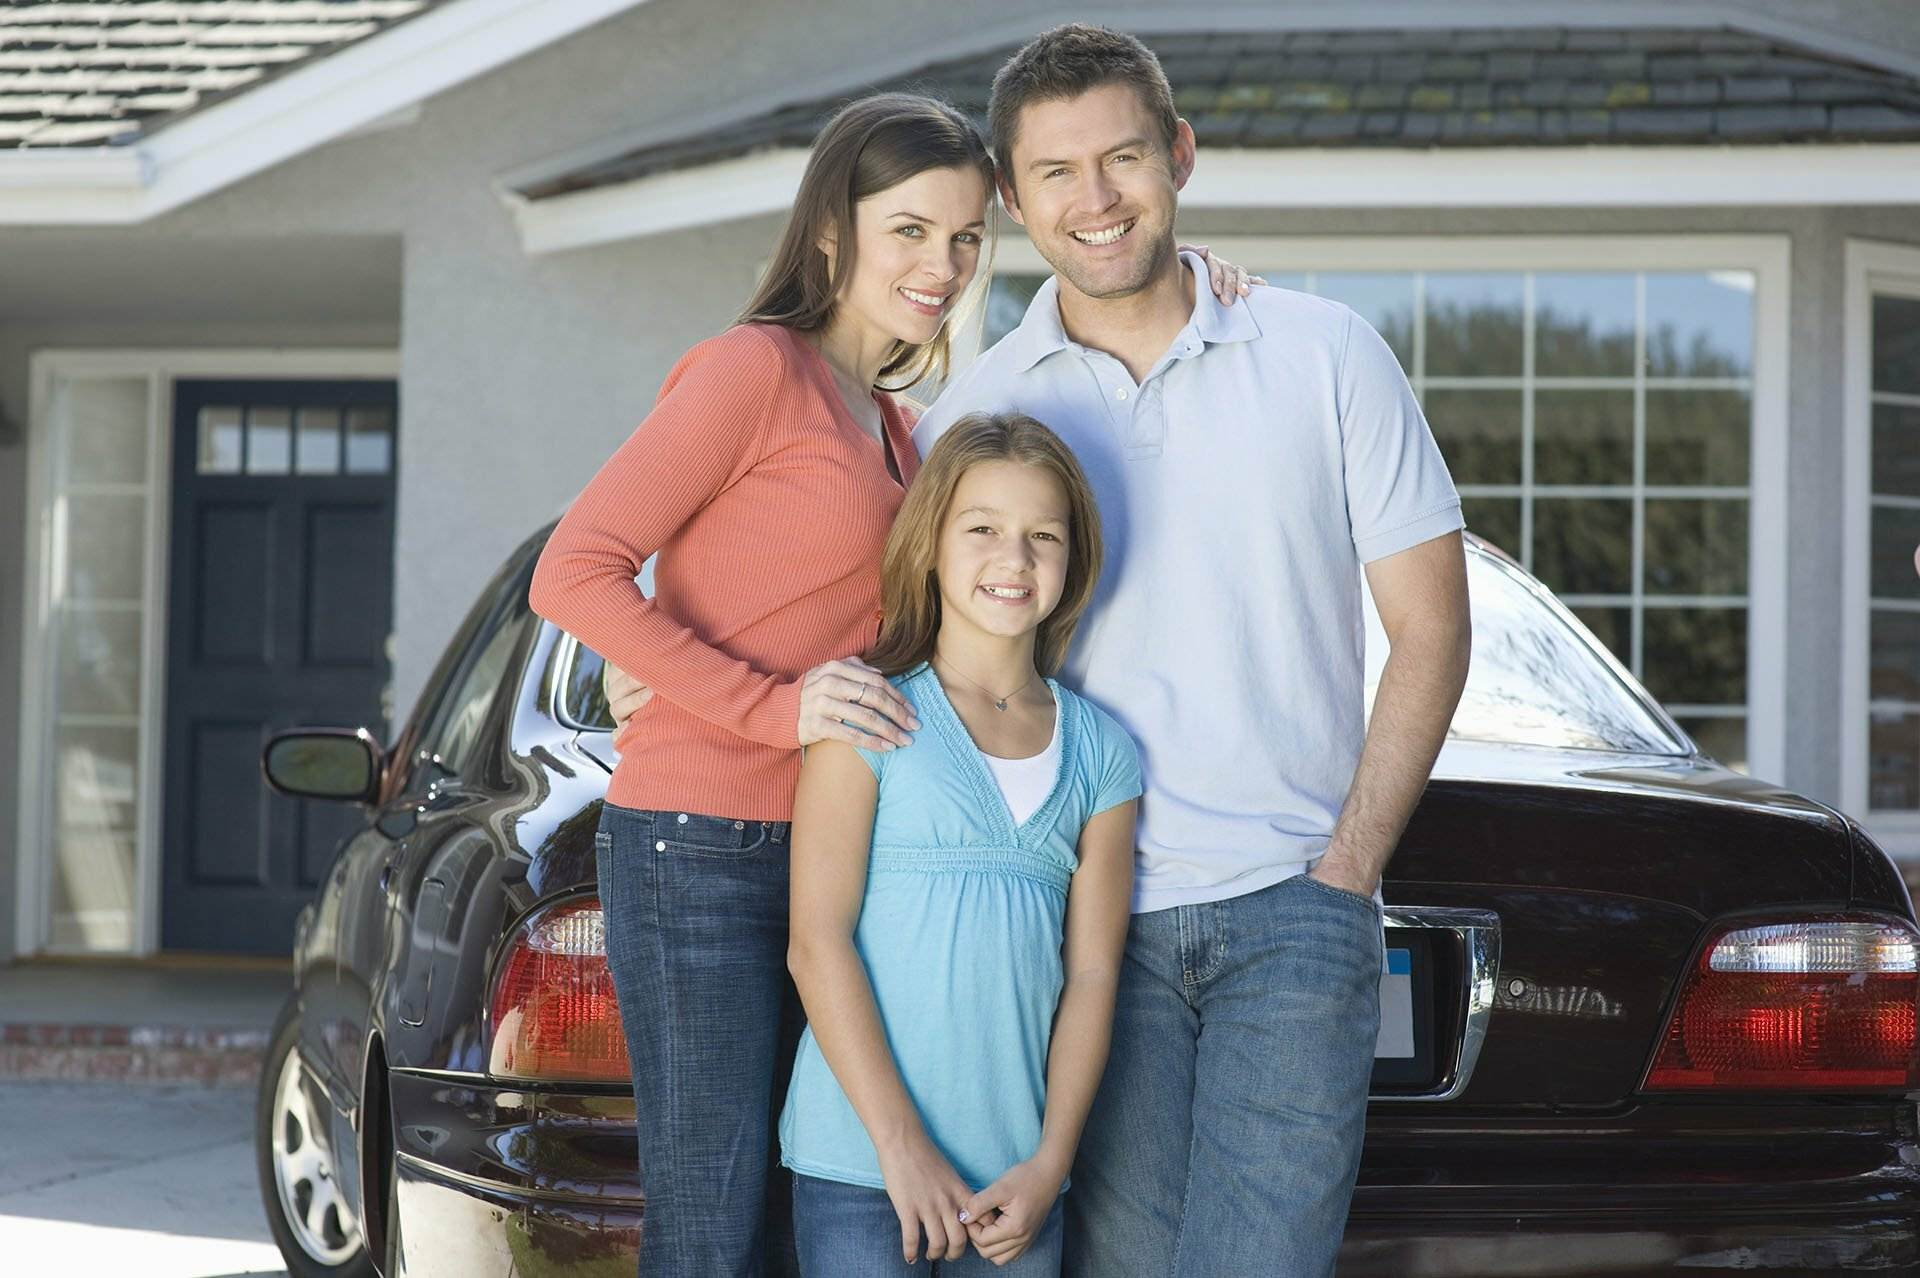 Image of Australian family, mum, dad and daughter - representing NBS Home Loans customers seeking Best Home Loans Sydney and Australia